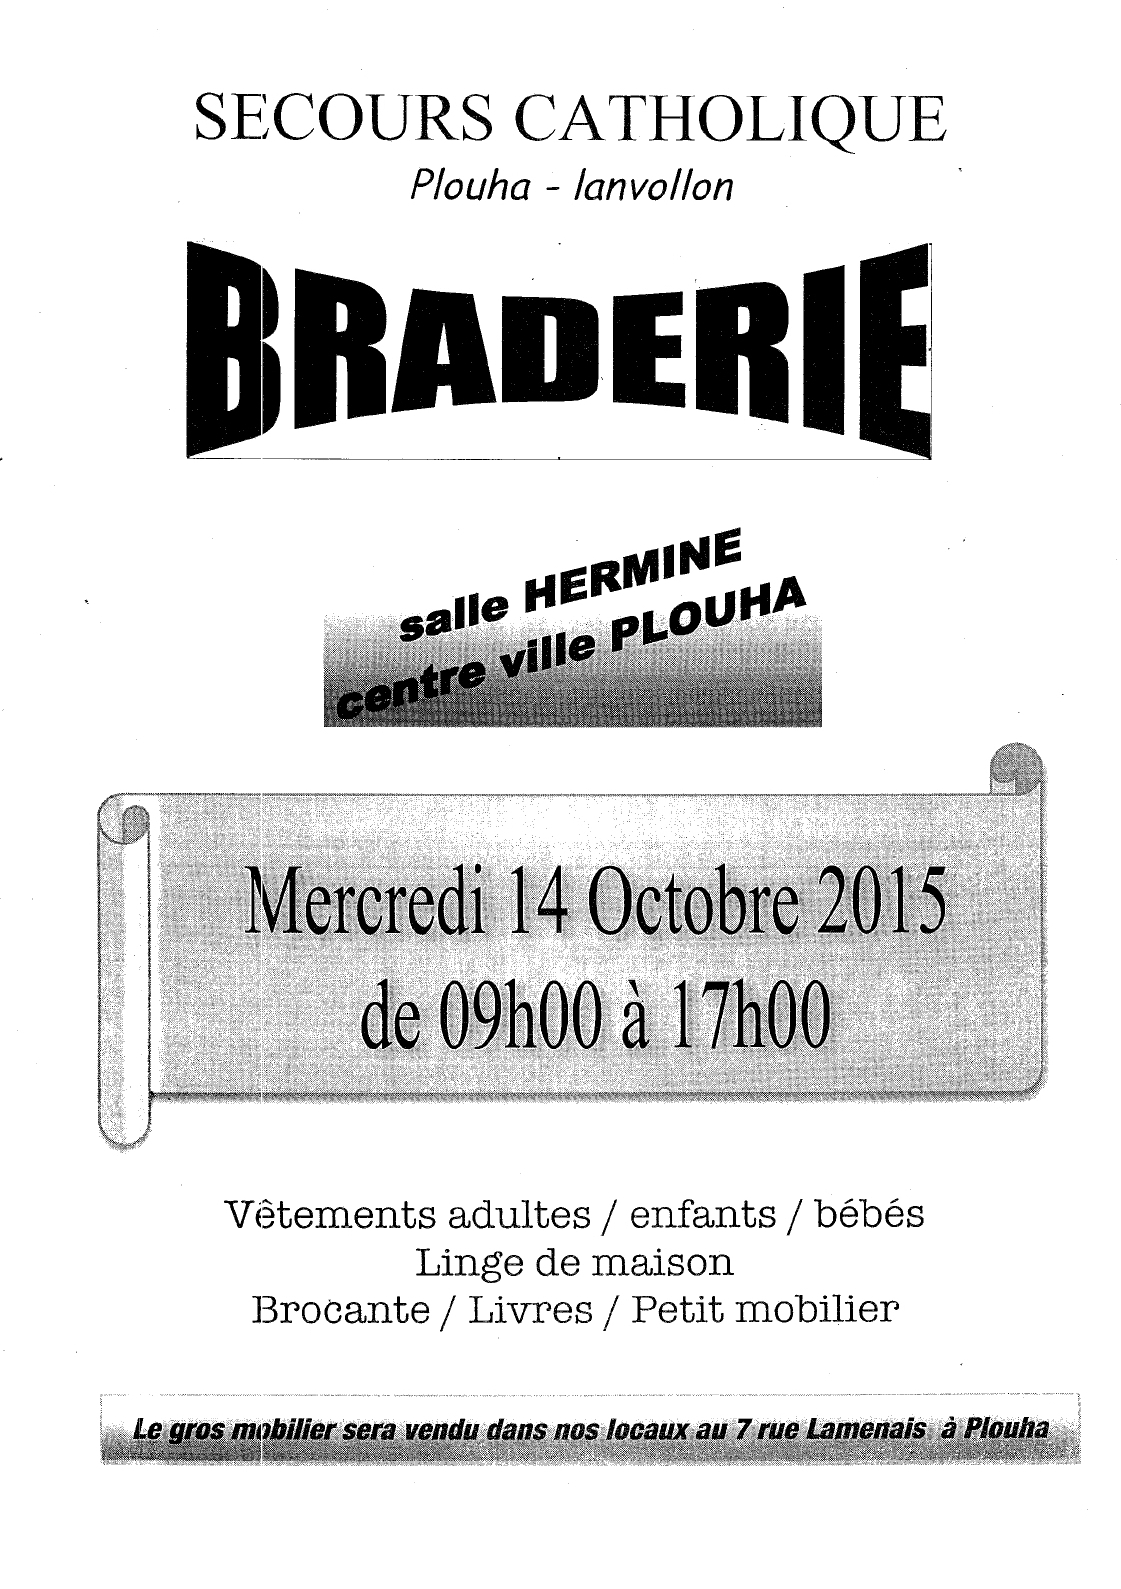 SECOURS CATHOLIQUE PLOUHA LANVOLLON Braderie 14-10-2015